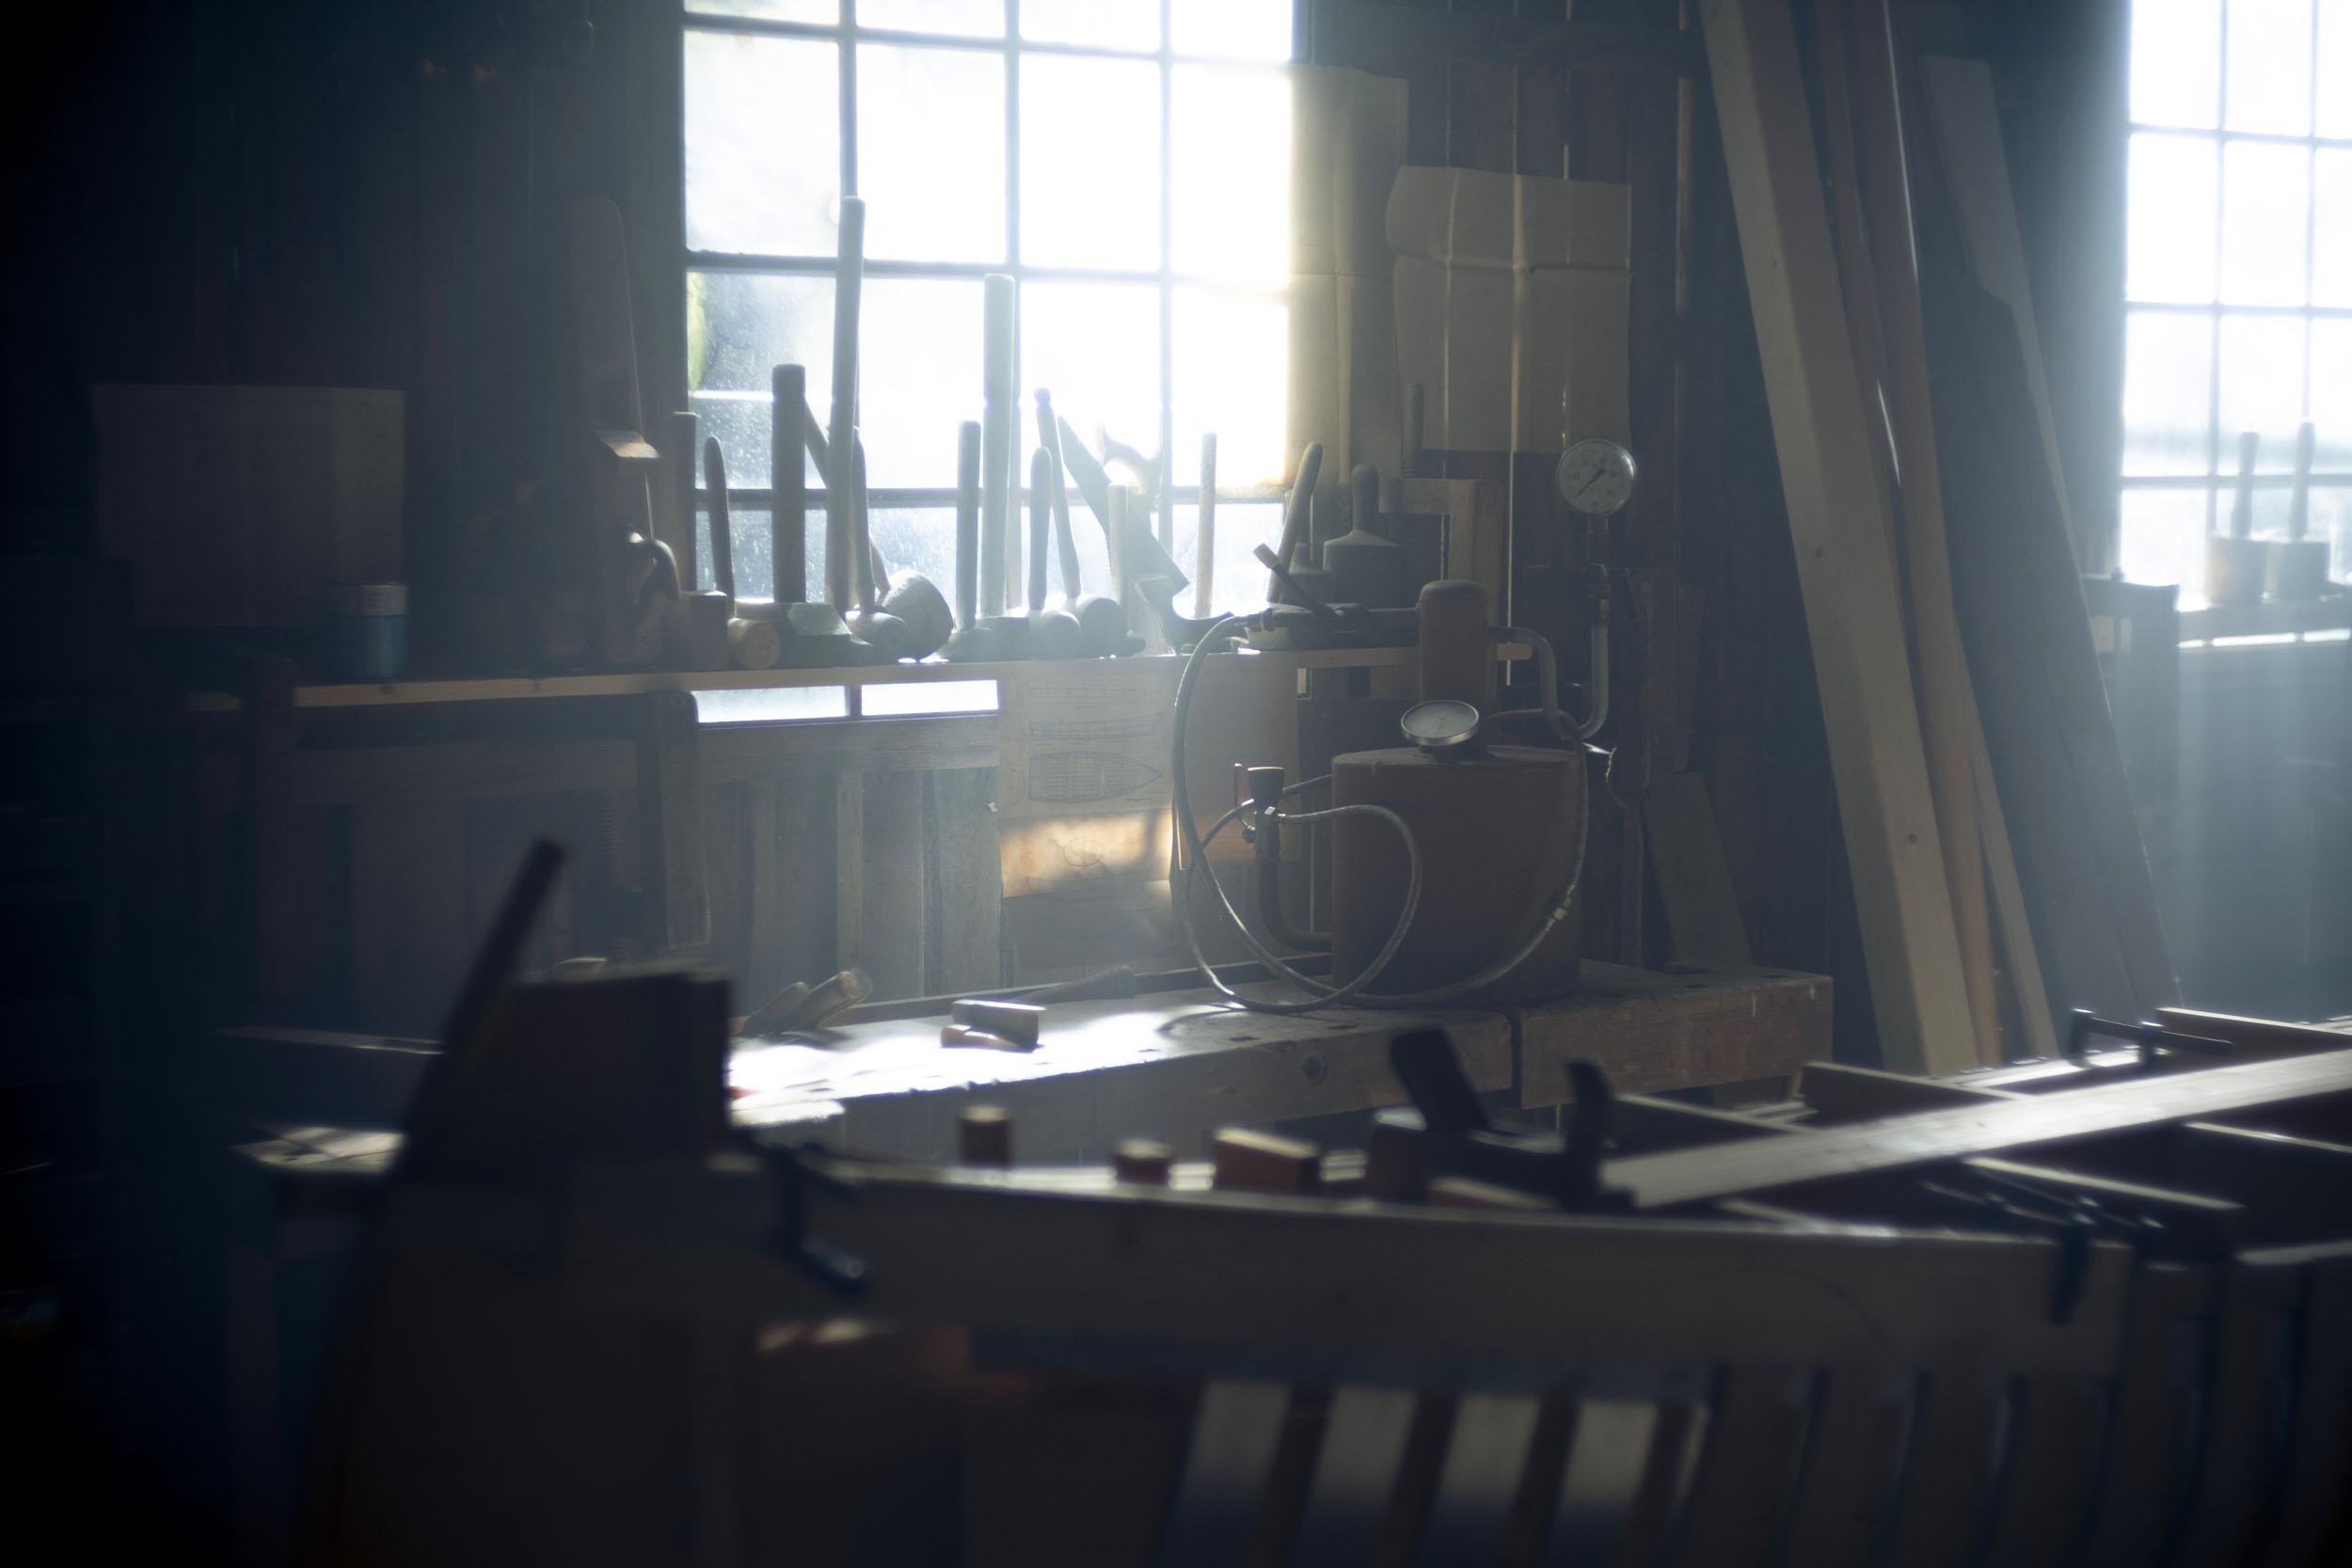 Skoda / Production Designer: Jiri Karasek